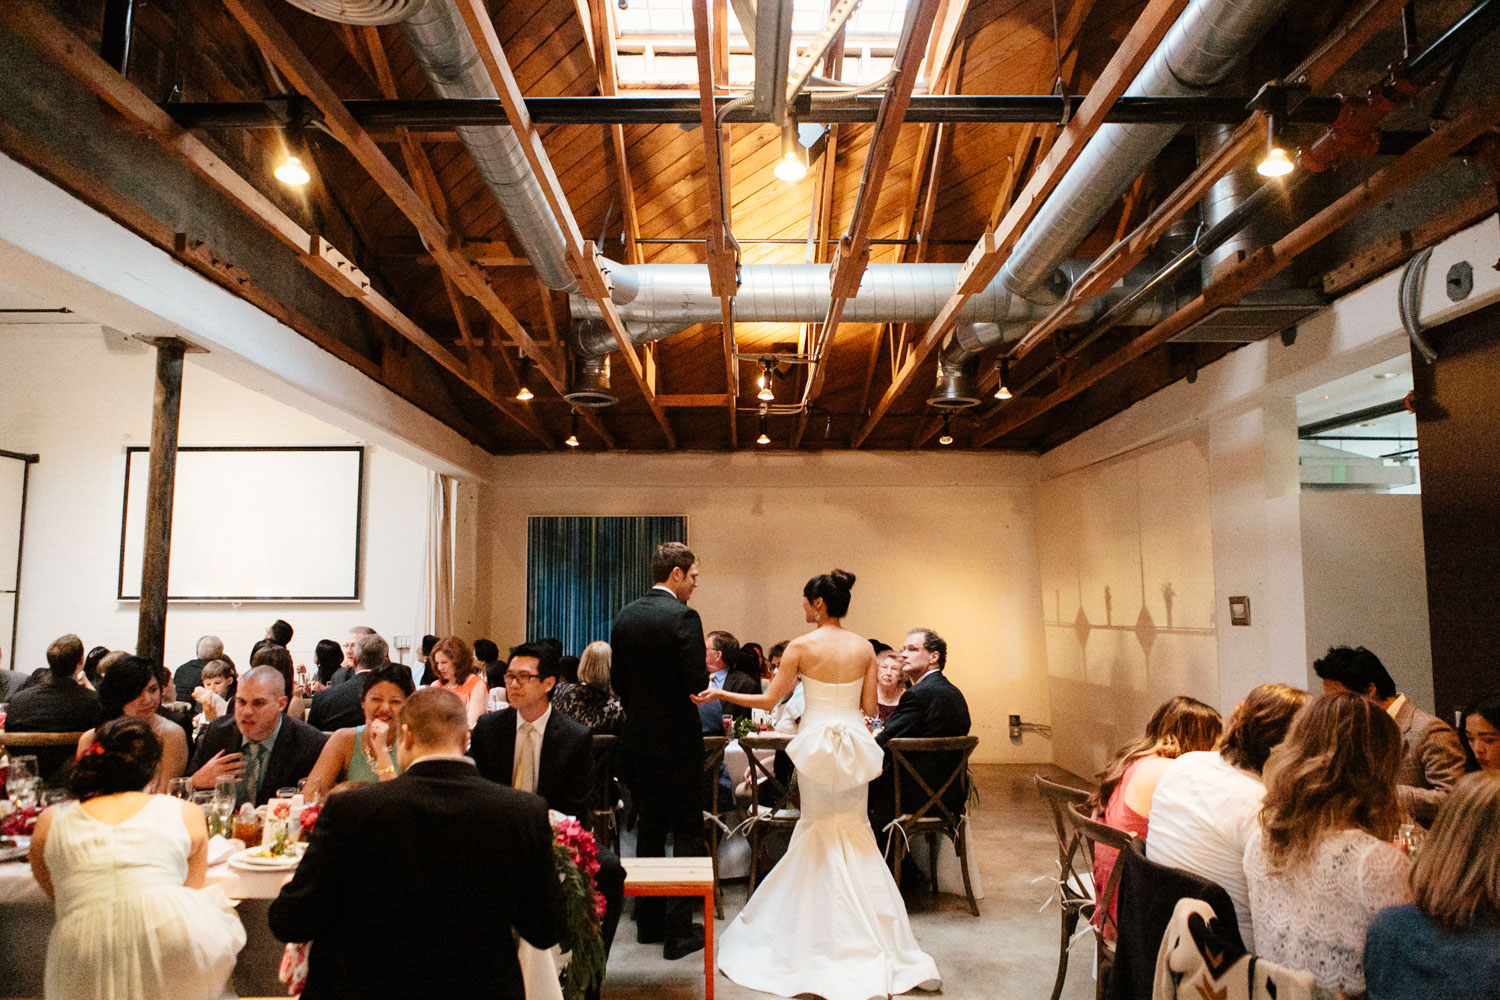 Los Angeles Wedding Photographer, The Elysian  - The Gathering Season x weareleoandkat 076.JPG